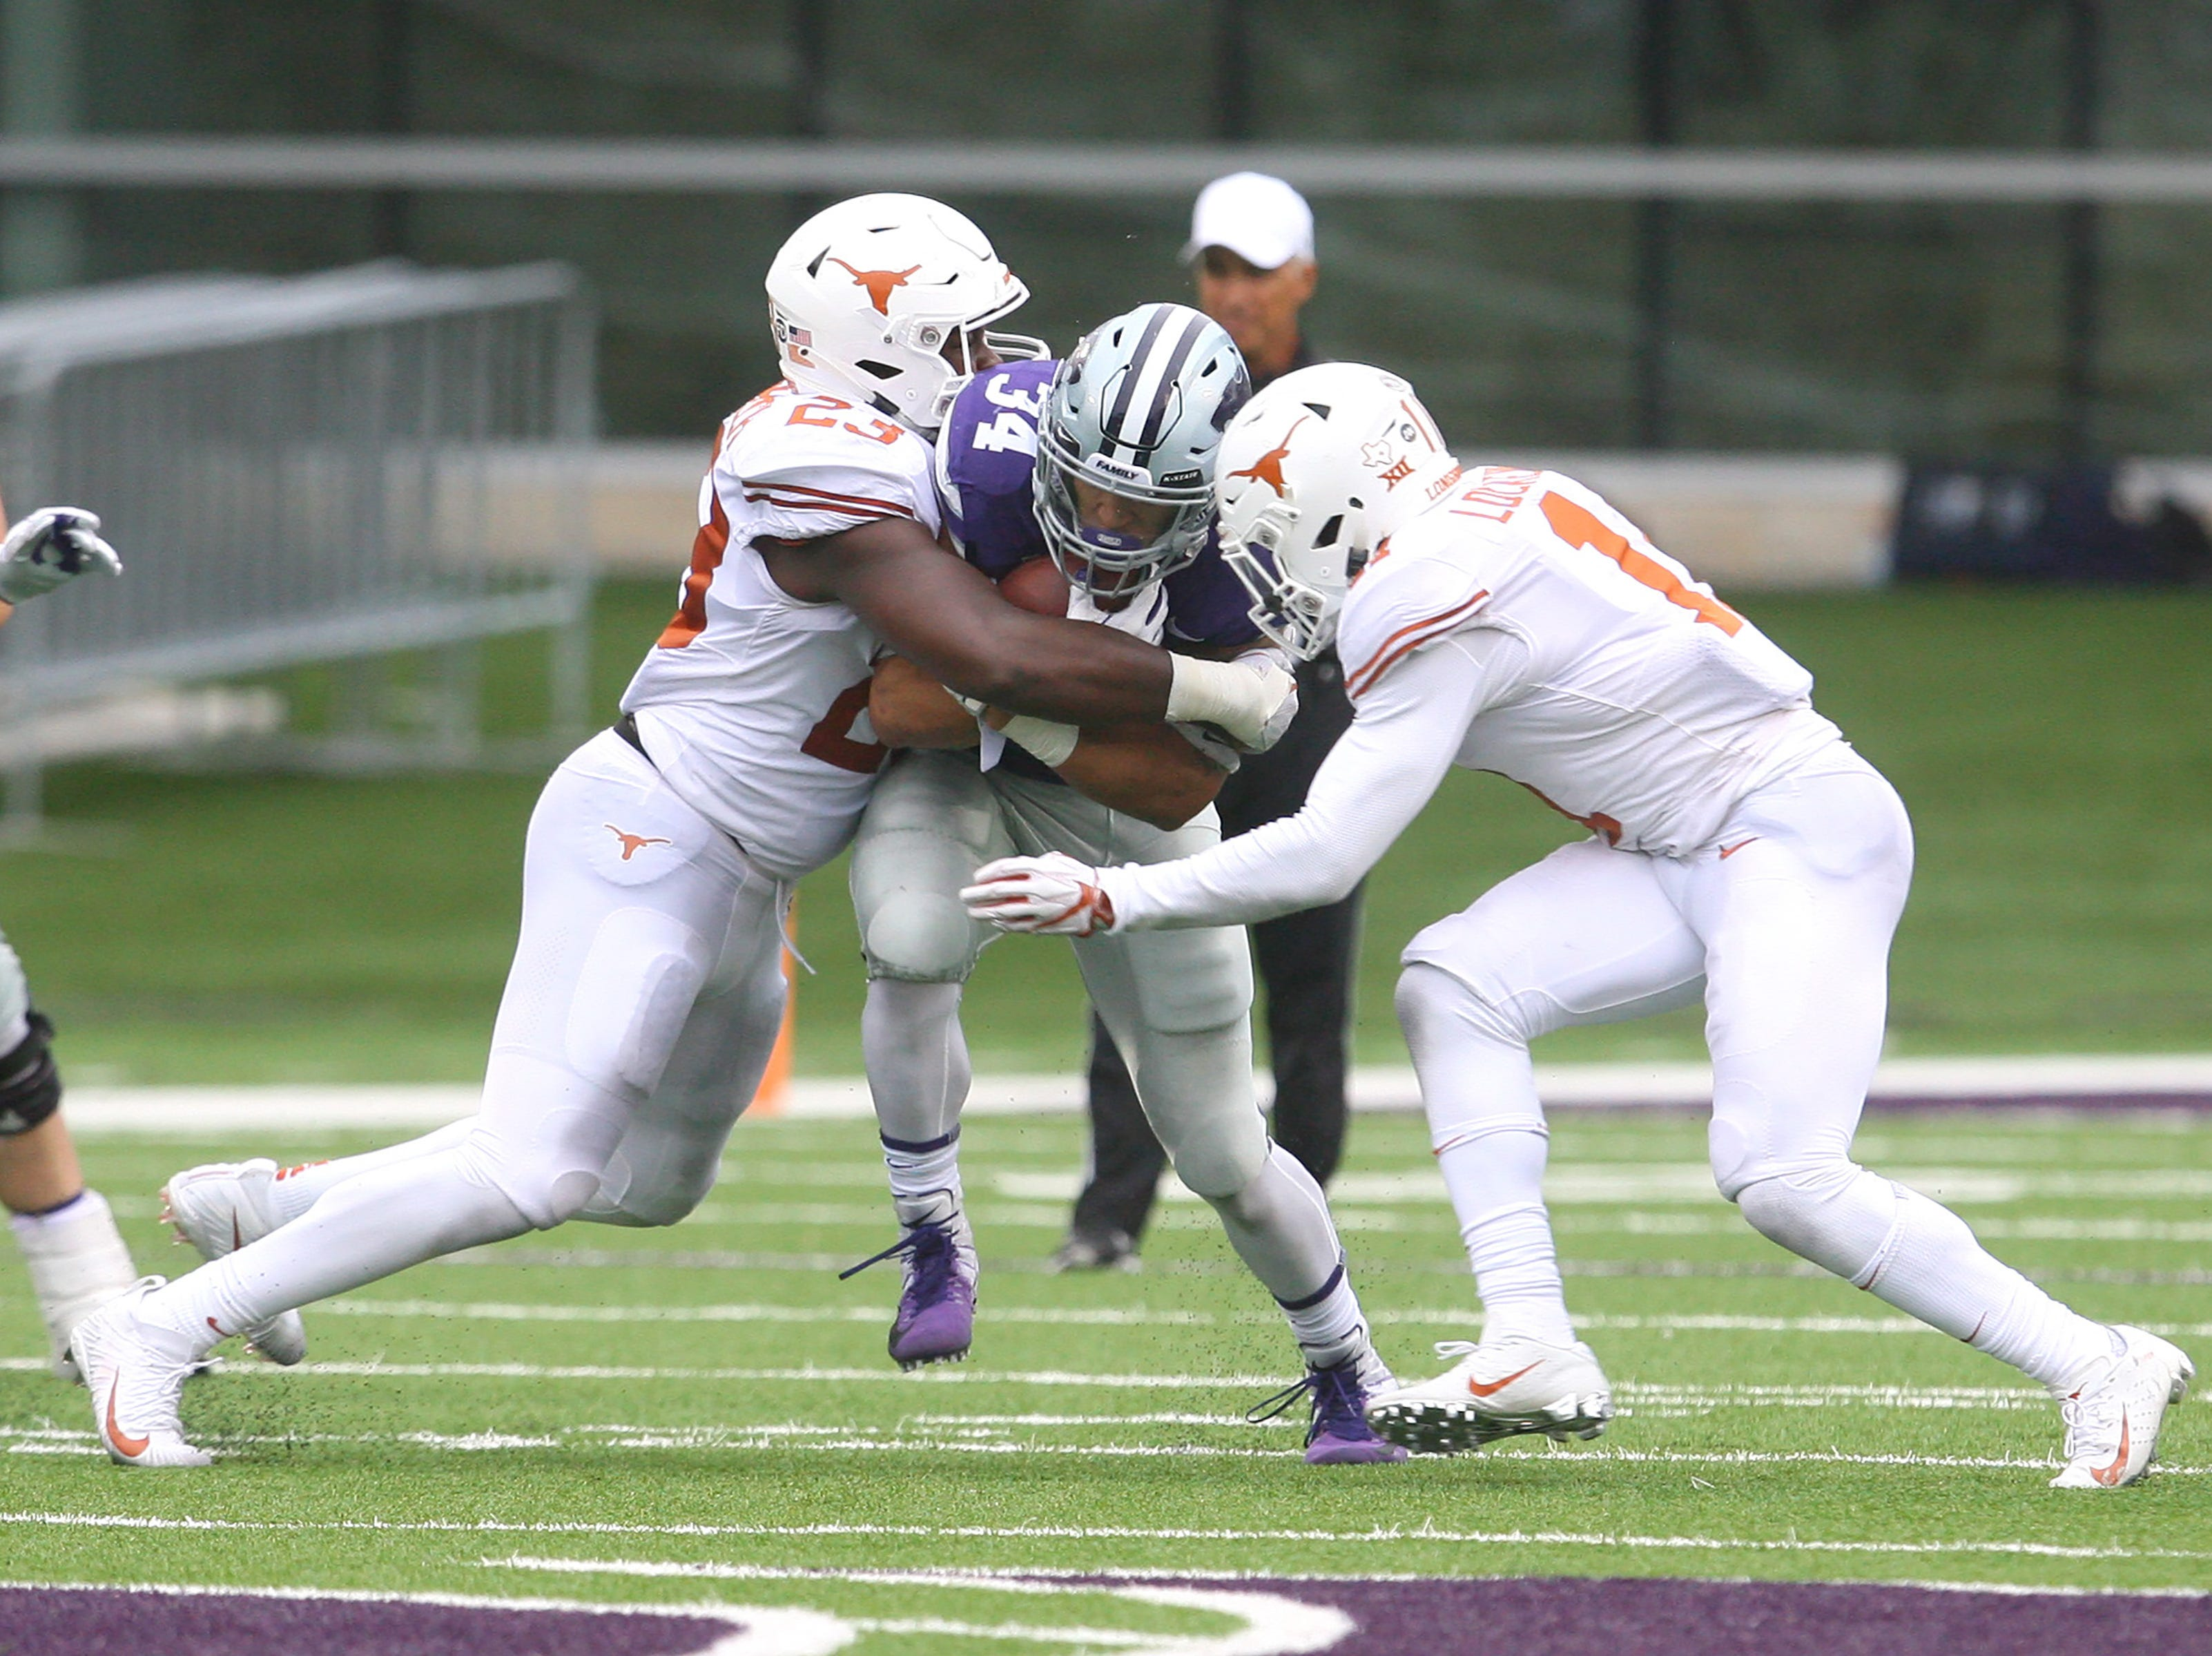 Kansas State Wildcats running back Alex Barnes (34) is tackled by Texas Longhorns linebacker Jeffrey McCulloch (23) and defensive back P.J. Locke III (11) during the third quarter at Bill Snyder Family Stadium.